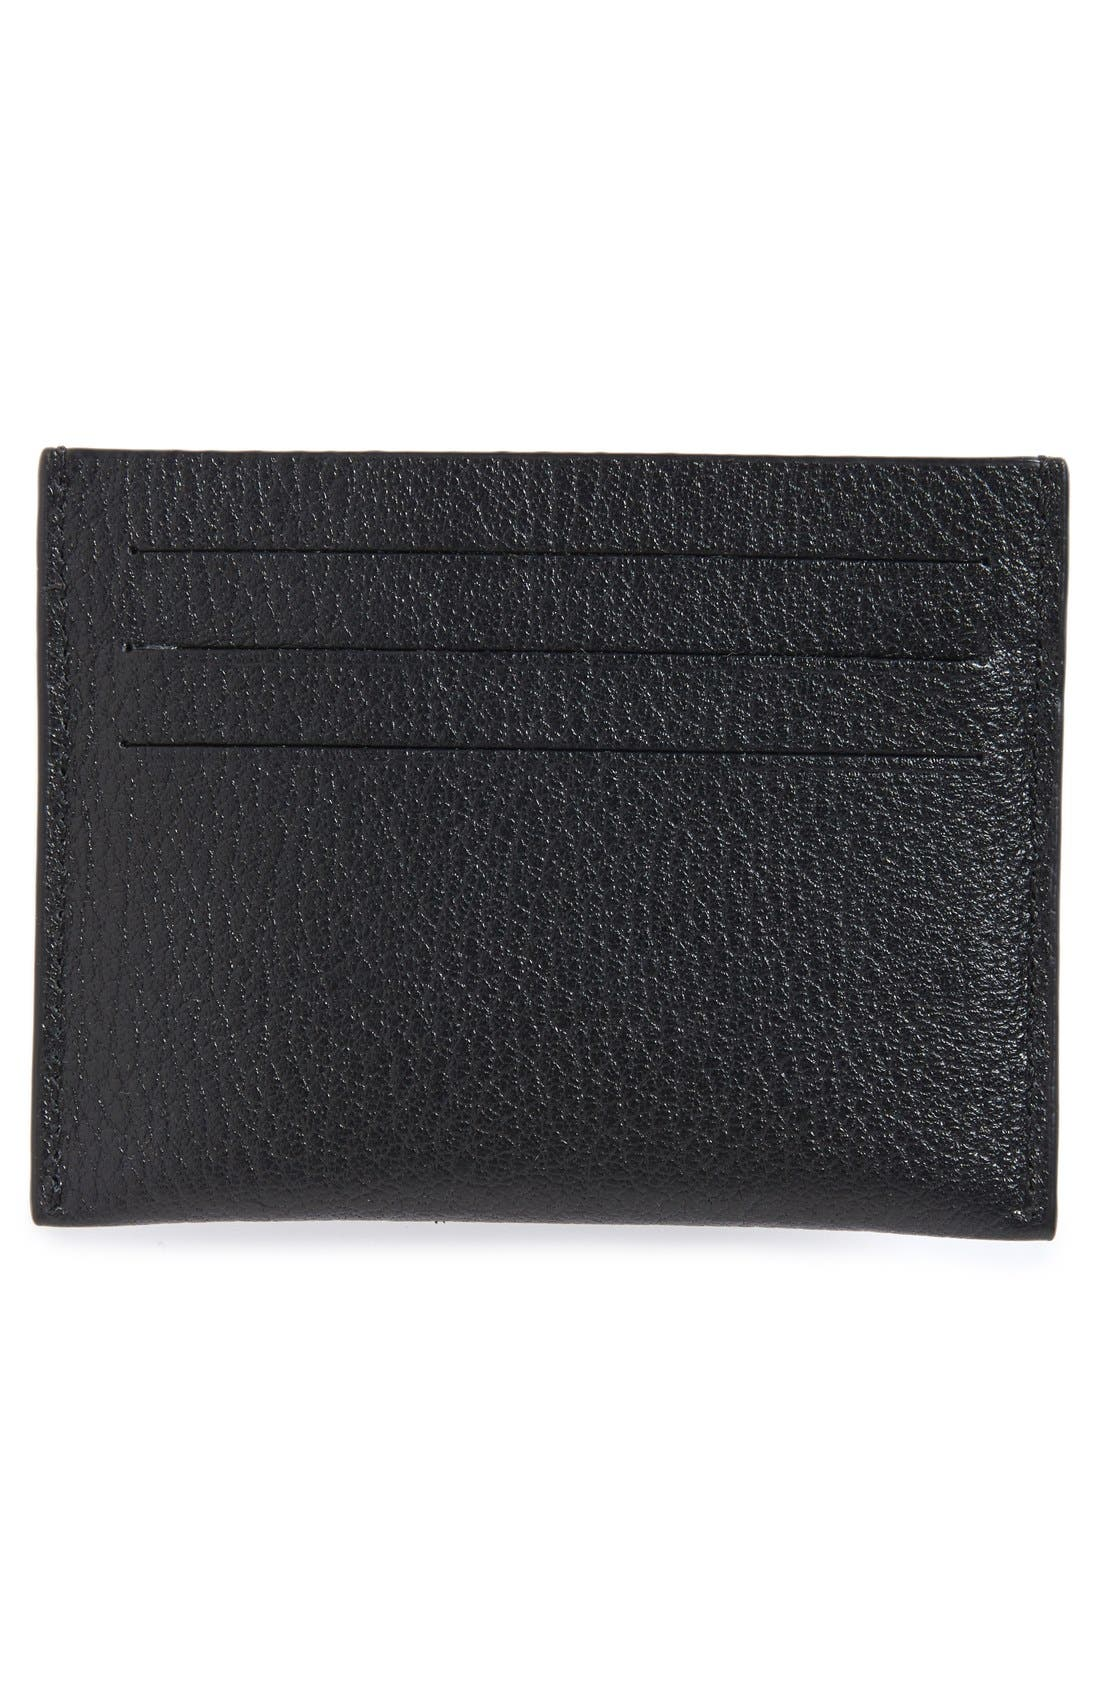 'Pandora' Card Case,                             Alternate thumbnail 2, color,                             BLACK